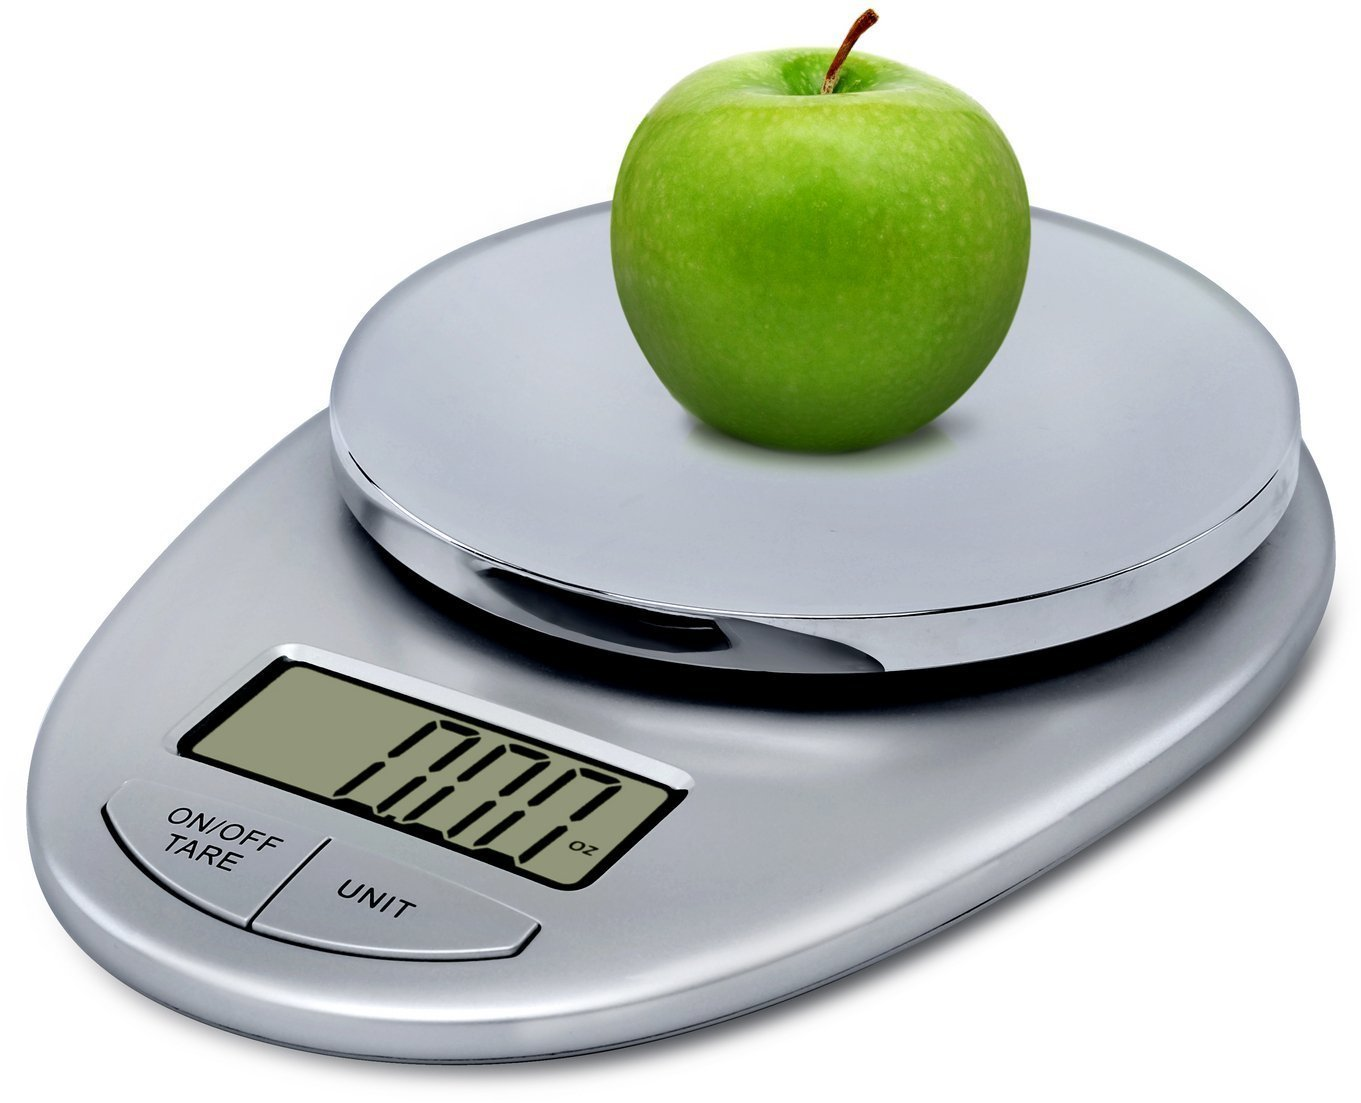 Kitchen Scales – Cooking Can Be Fun with Digital Food Scales